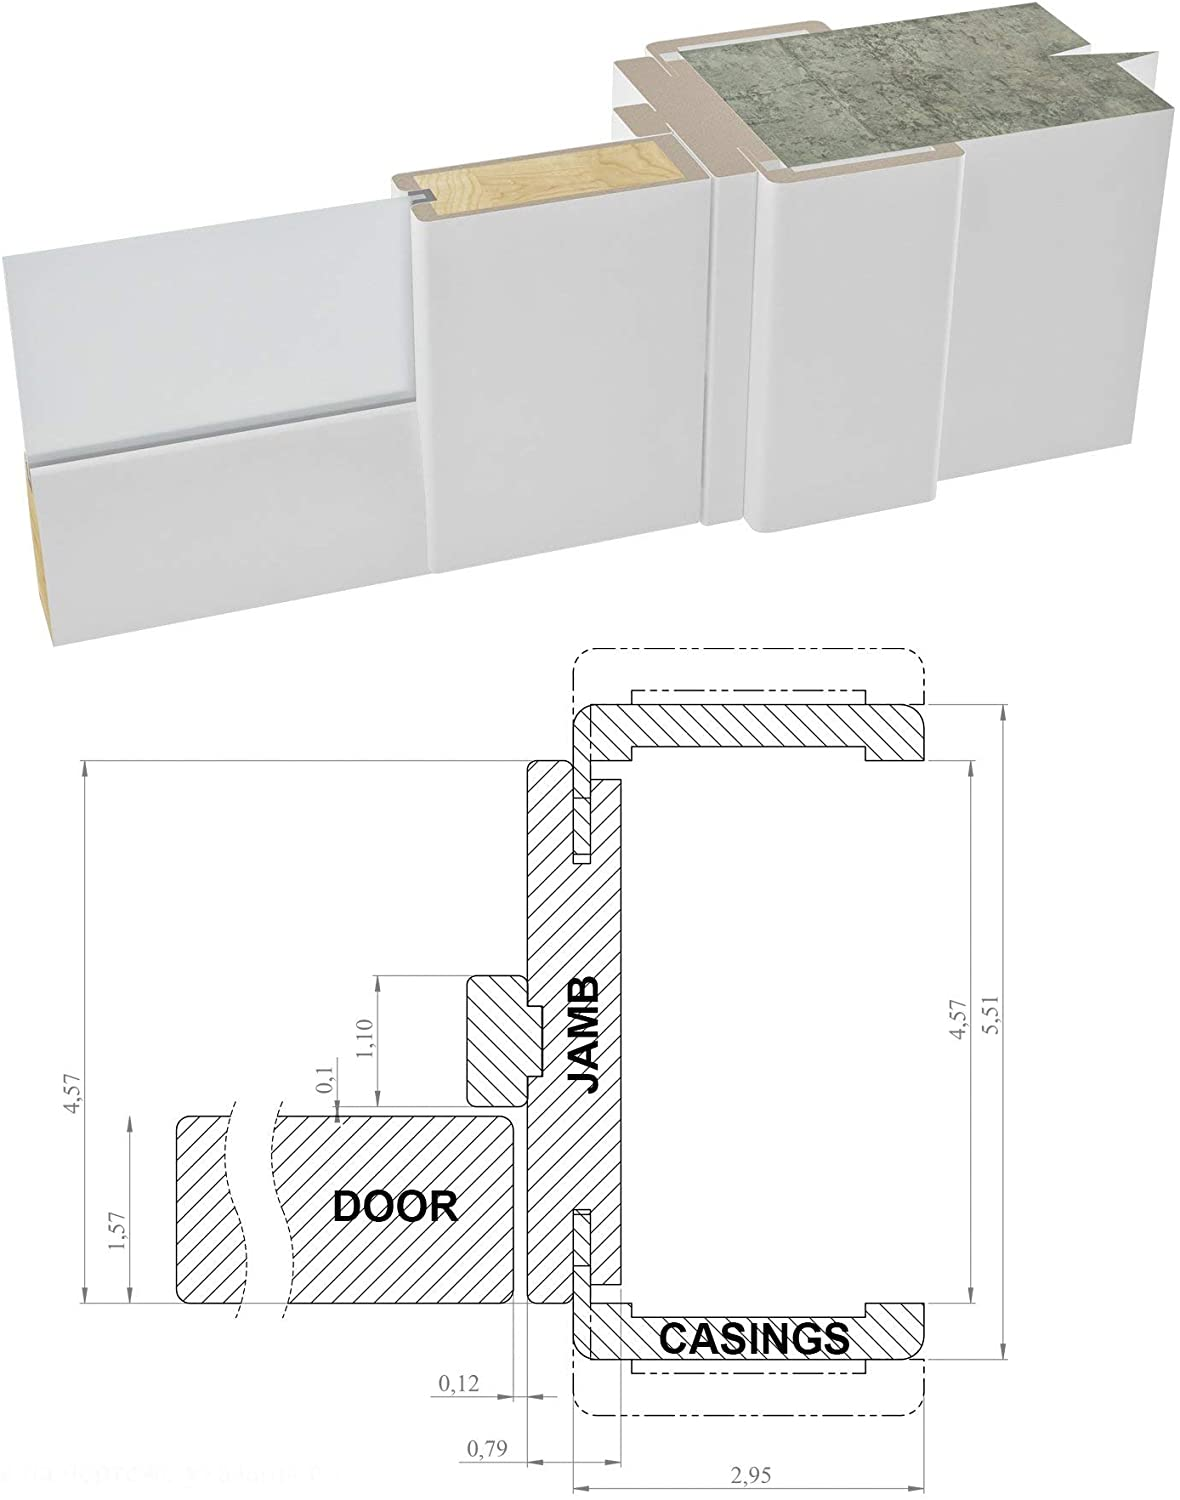 Wood Solid Panel Frame Trims Solid French Double Doors 56 x 80 inches Clear Glass 3 Lites Closet Bedroom Sturdy Doors Lucia 2555 Matte White